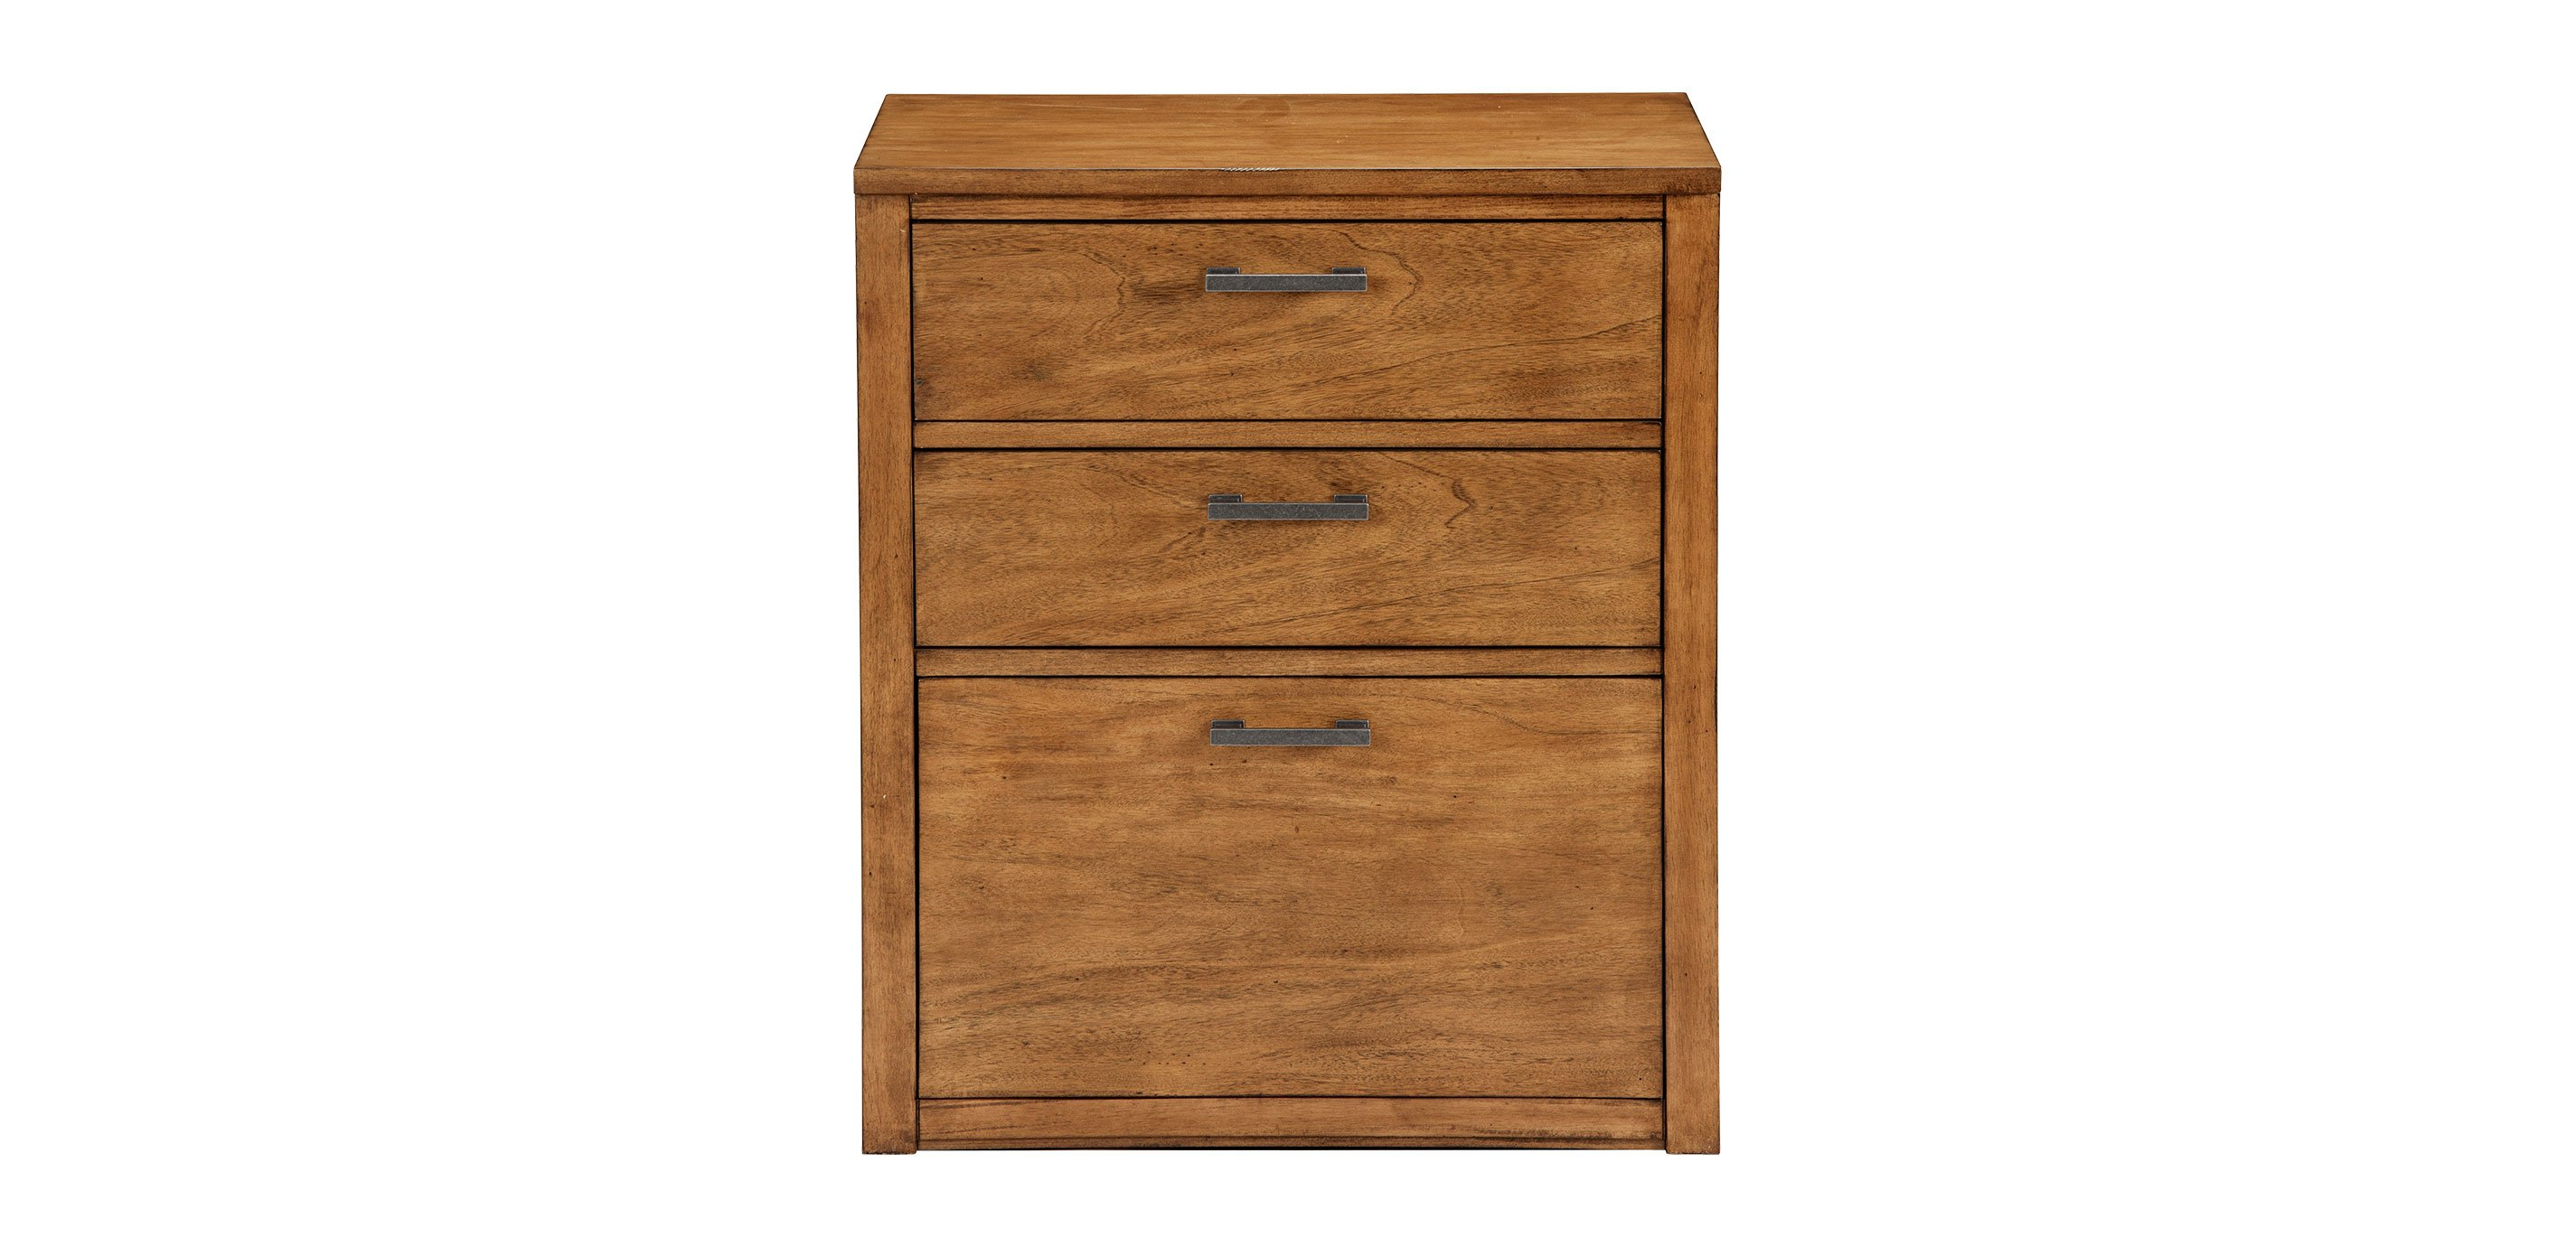 Awesome solid Wood File Cabinet 4 Drawer